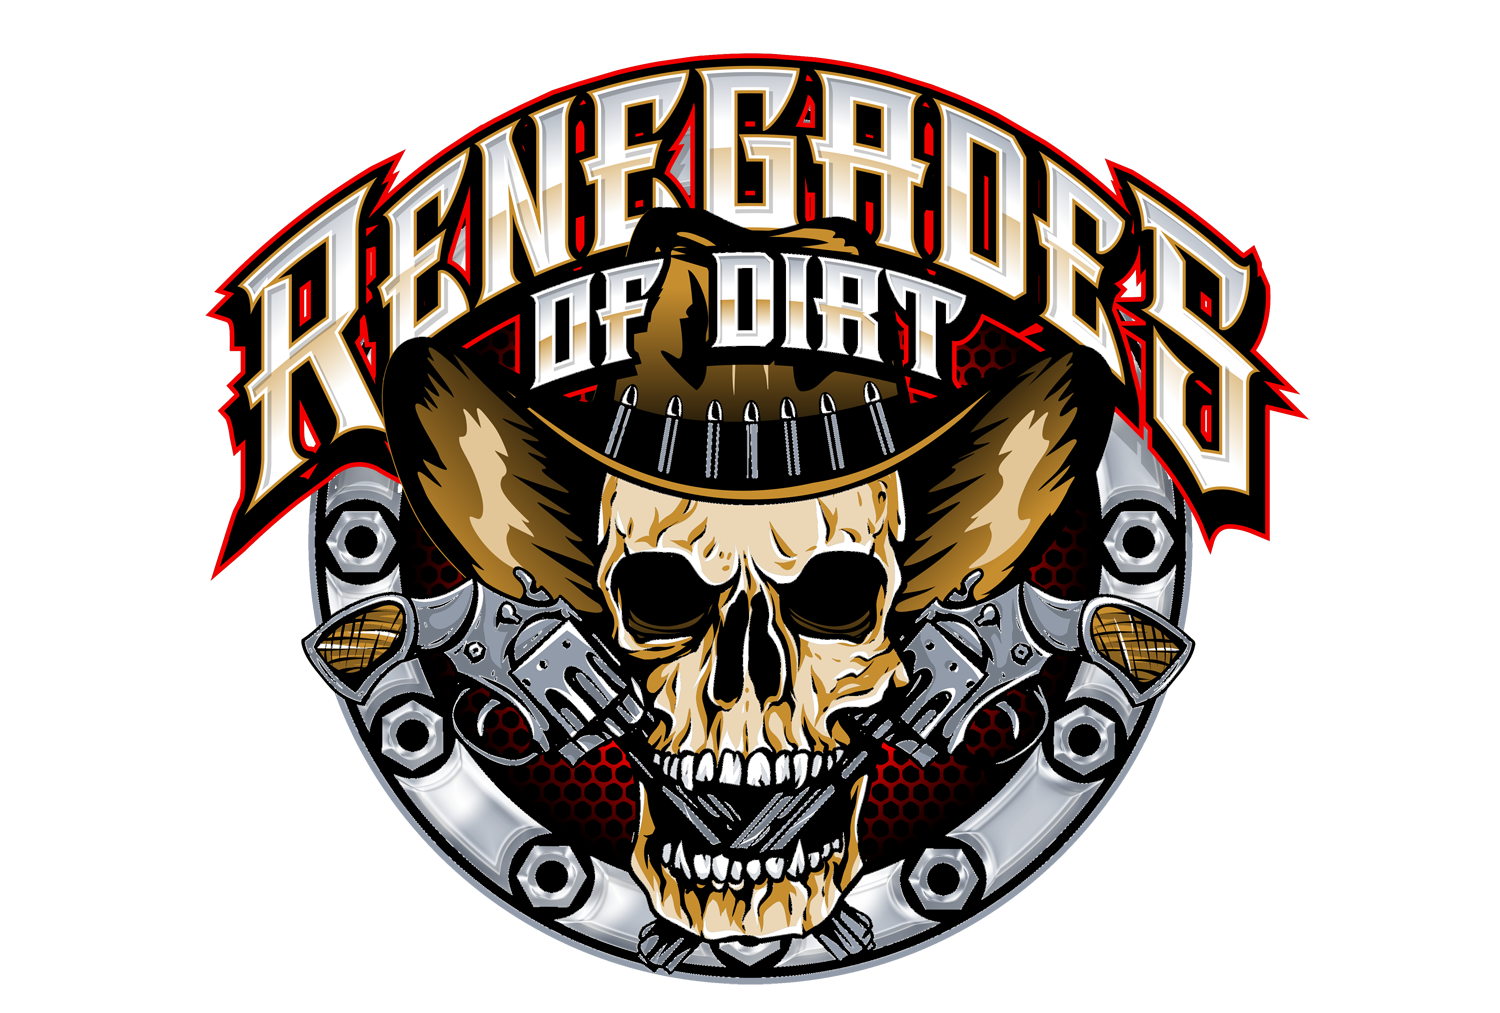 Renegade Logo v2 for Brad